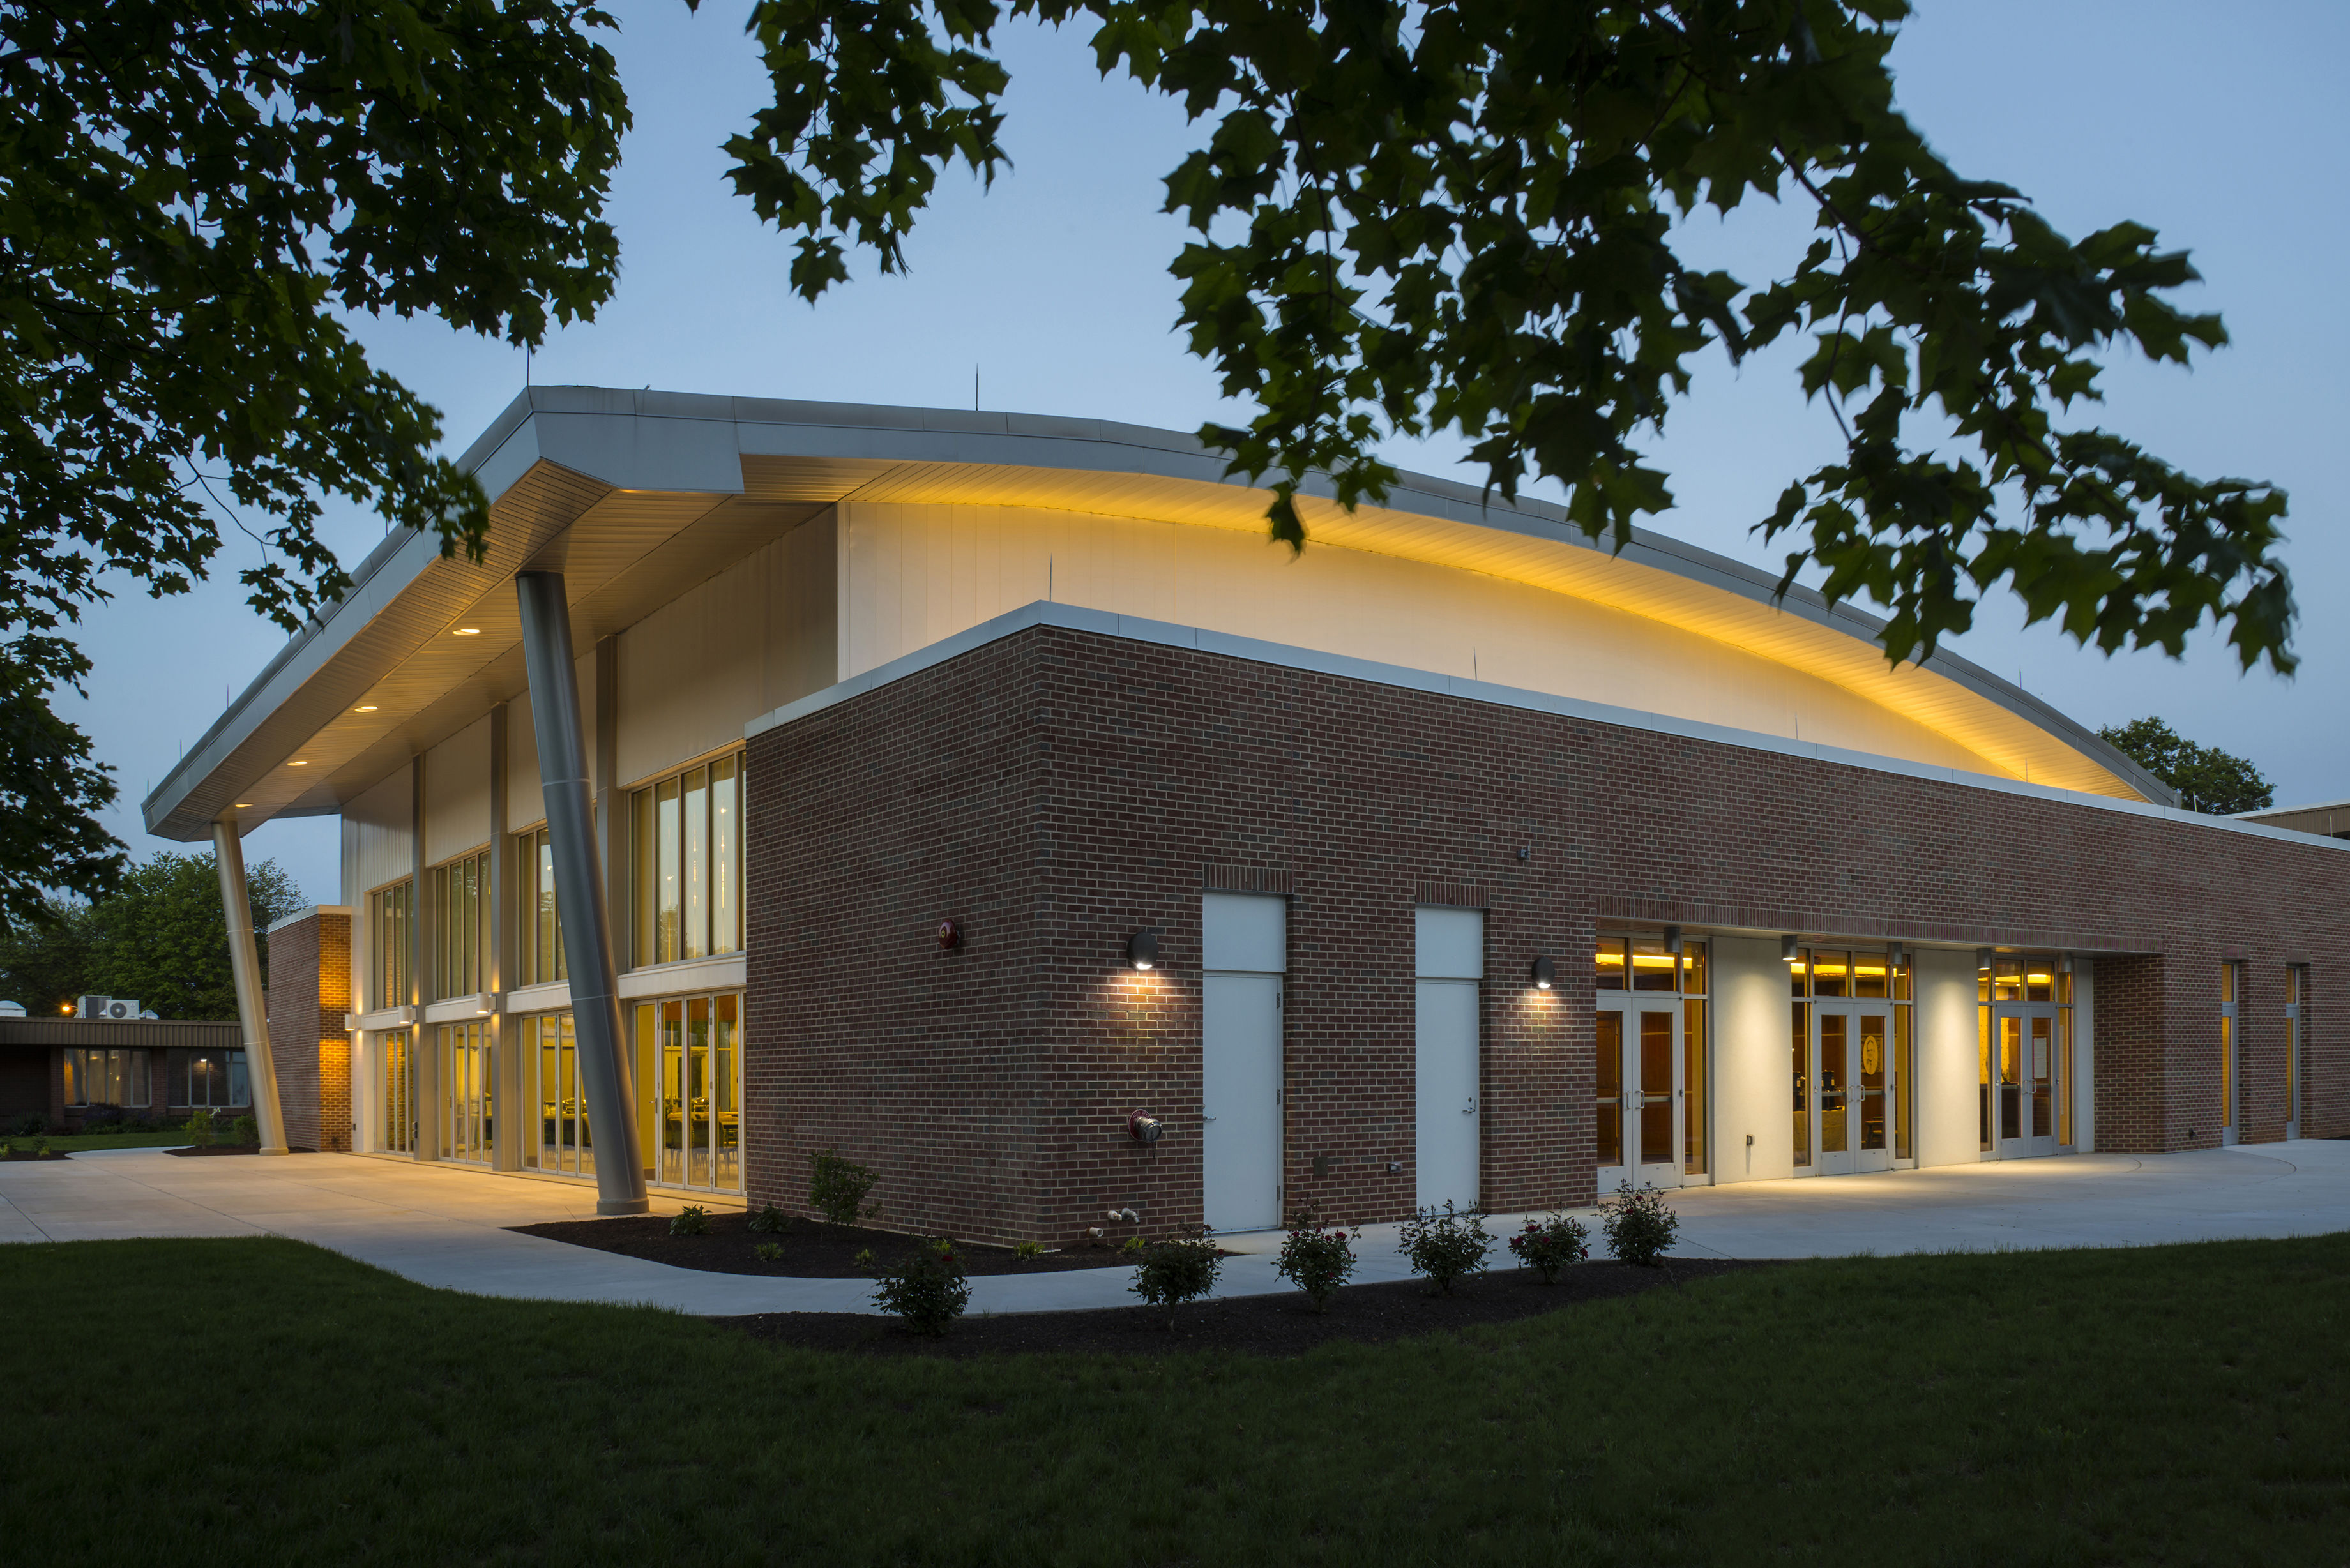 Rife Center Mechanicsburg Pennsylvania exterior night shot THW senior living architects